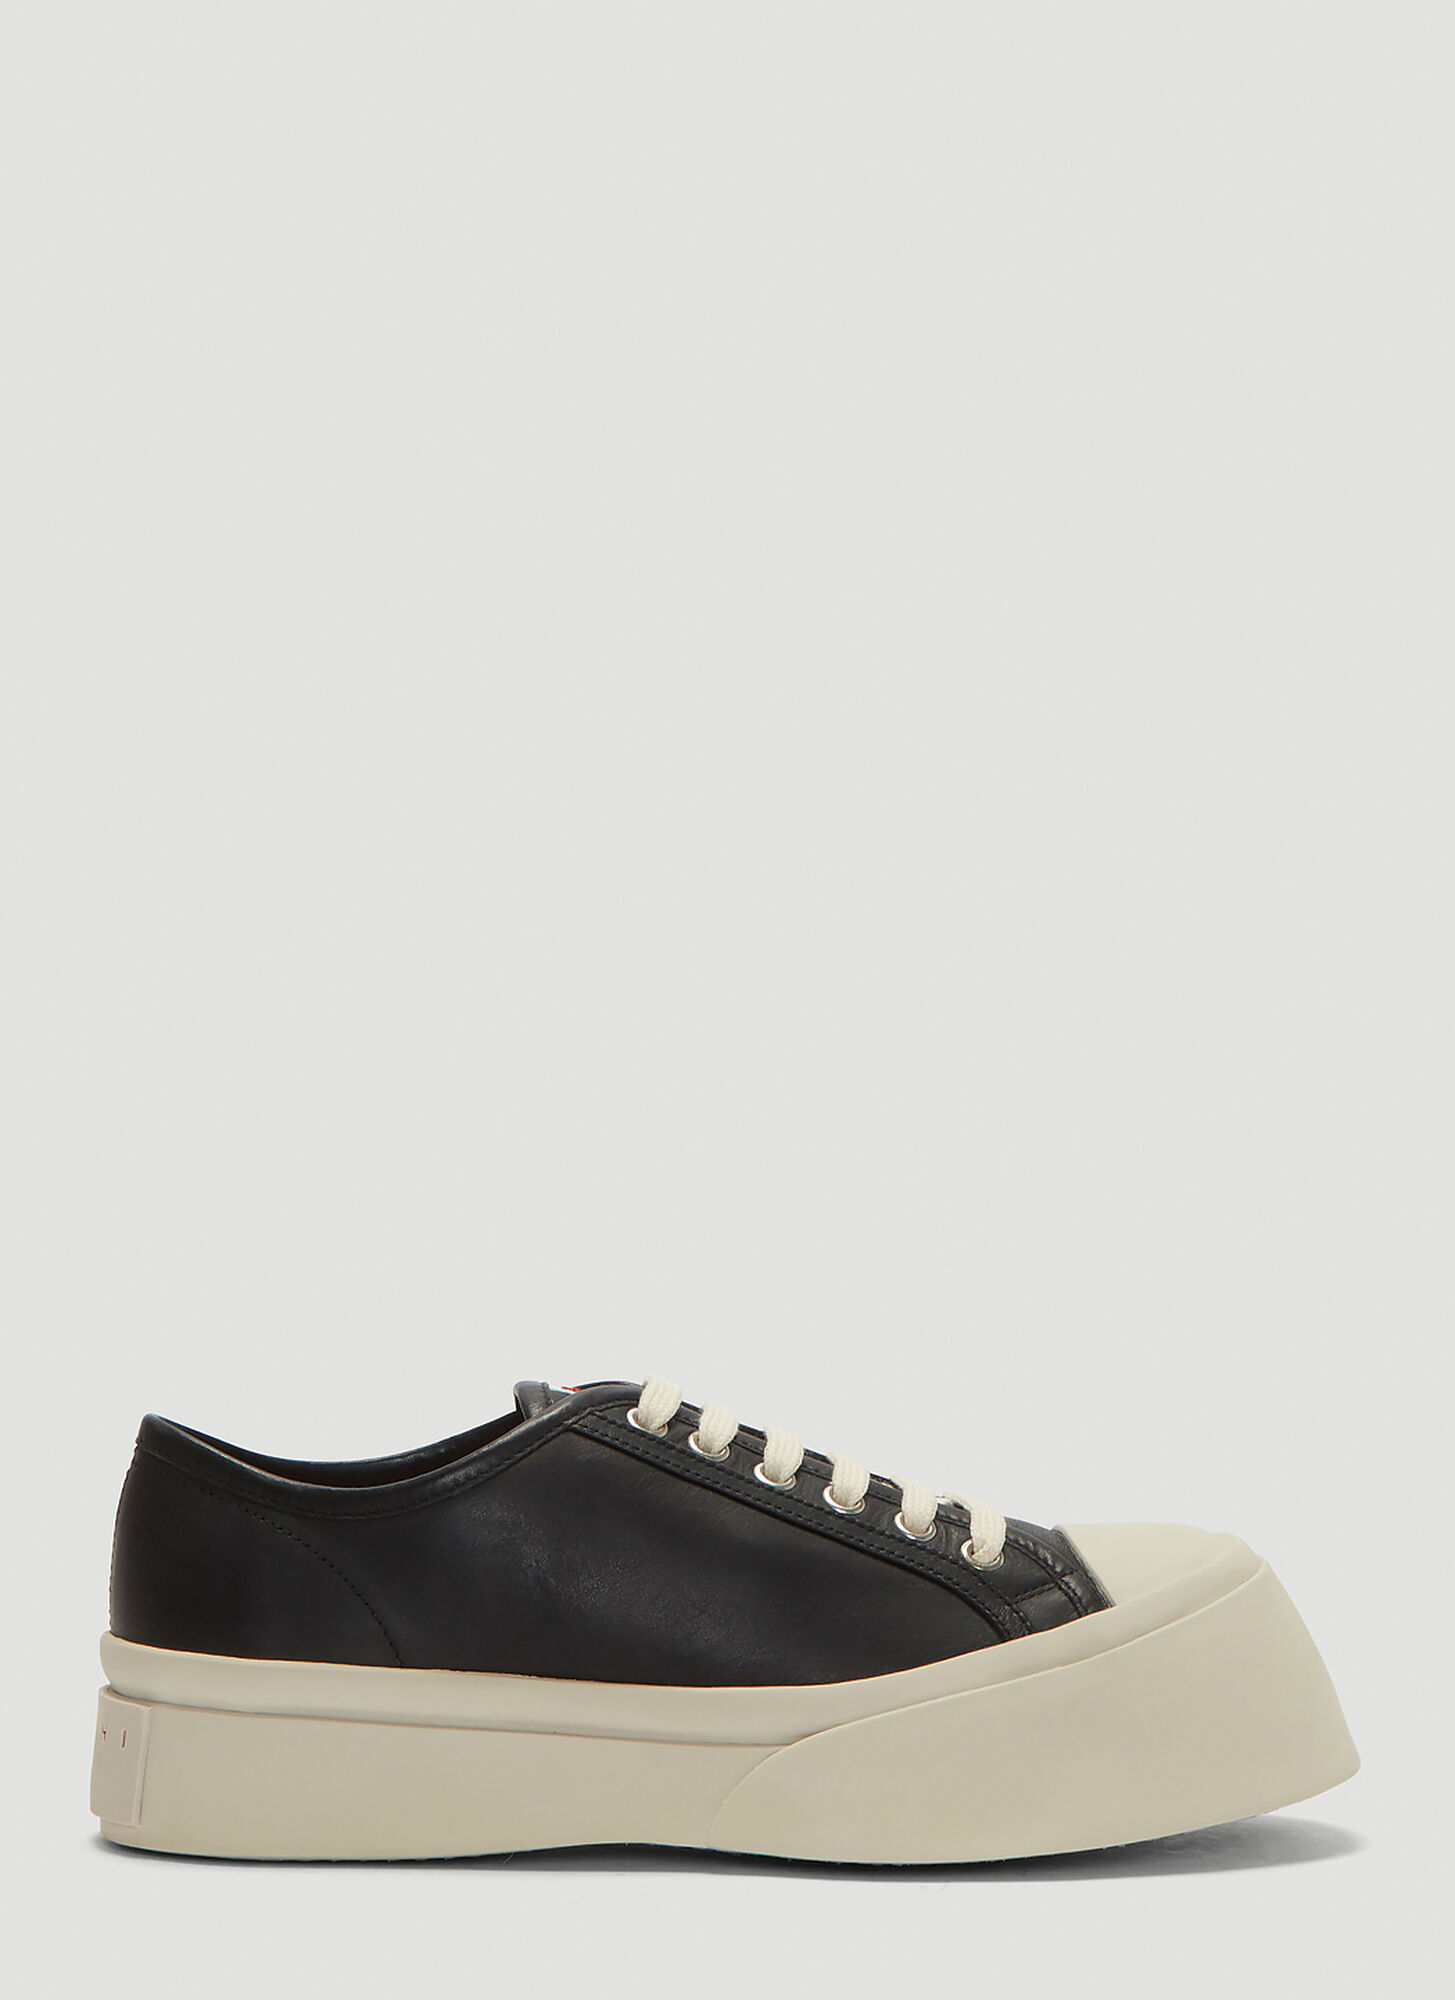 Marni Leather Sneakers in Black